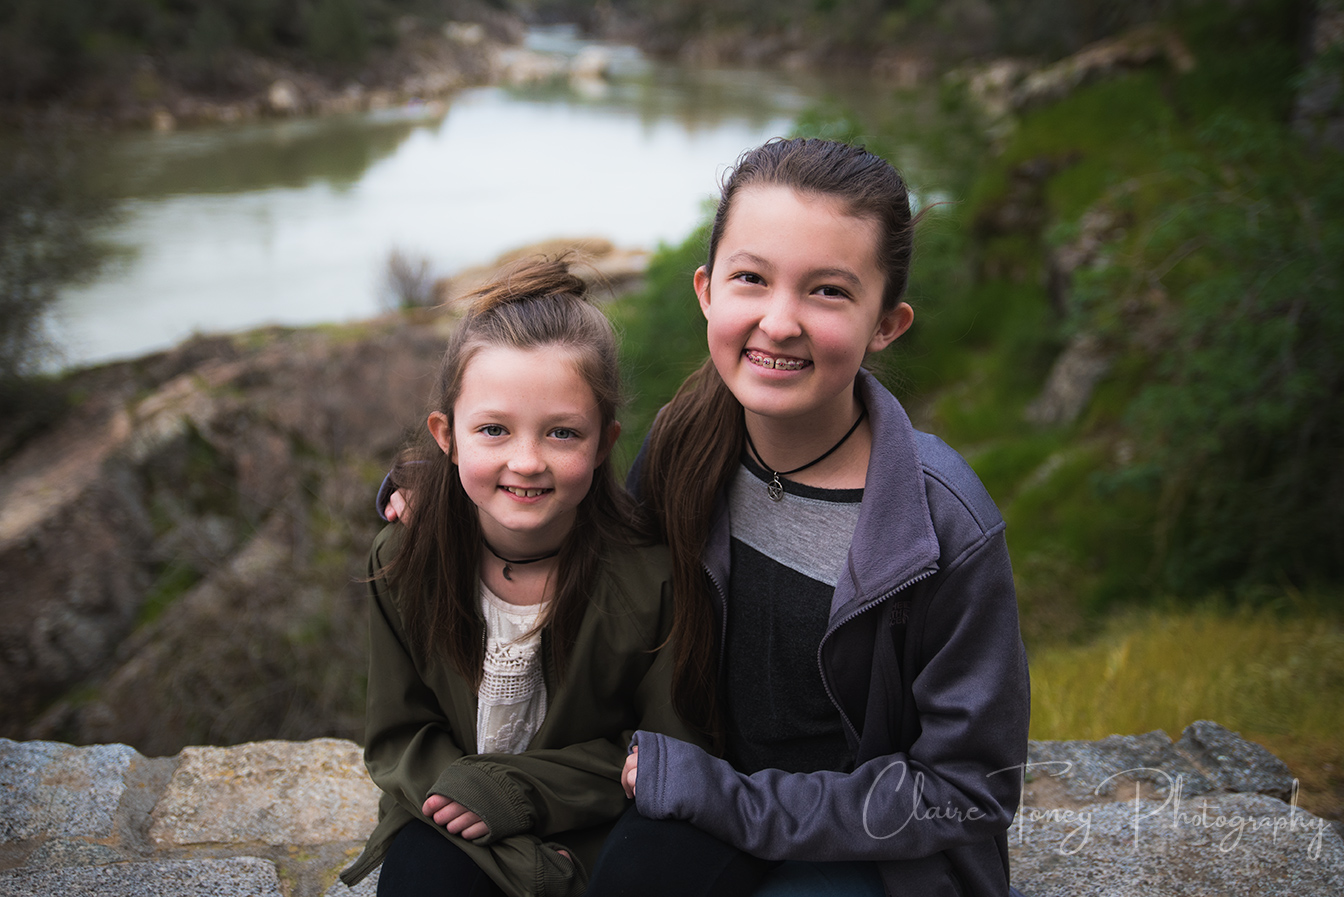 tween sisters sitting in lookout area with view of Folsom Rainbow Bridge behind them